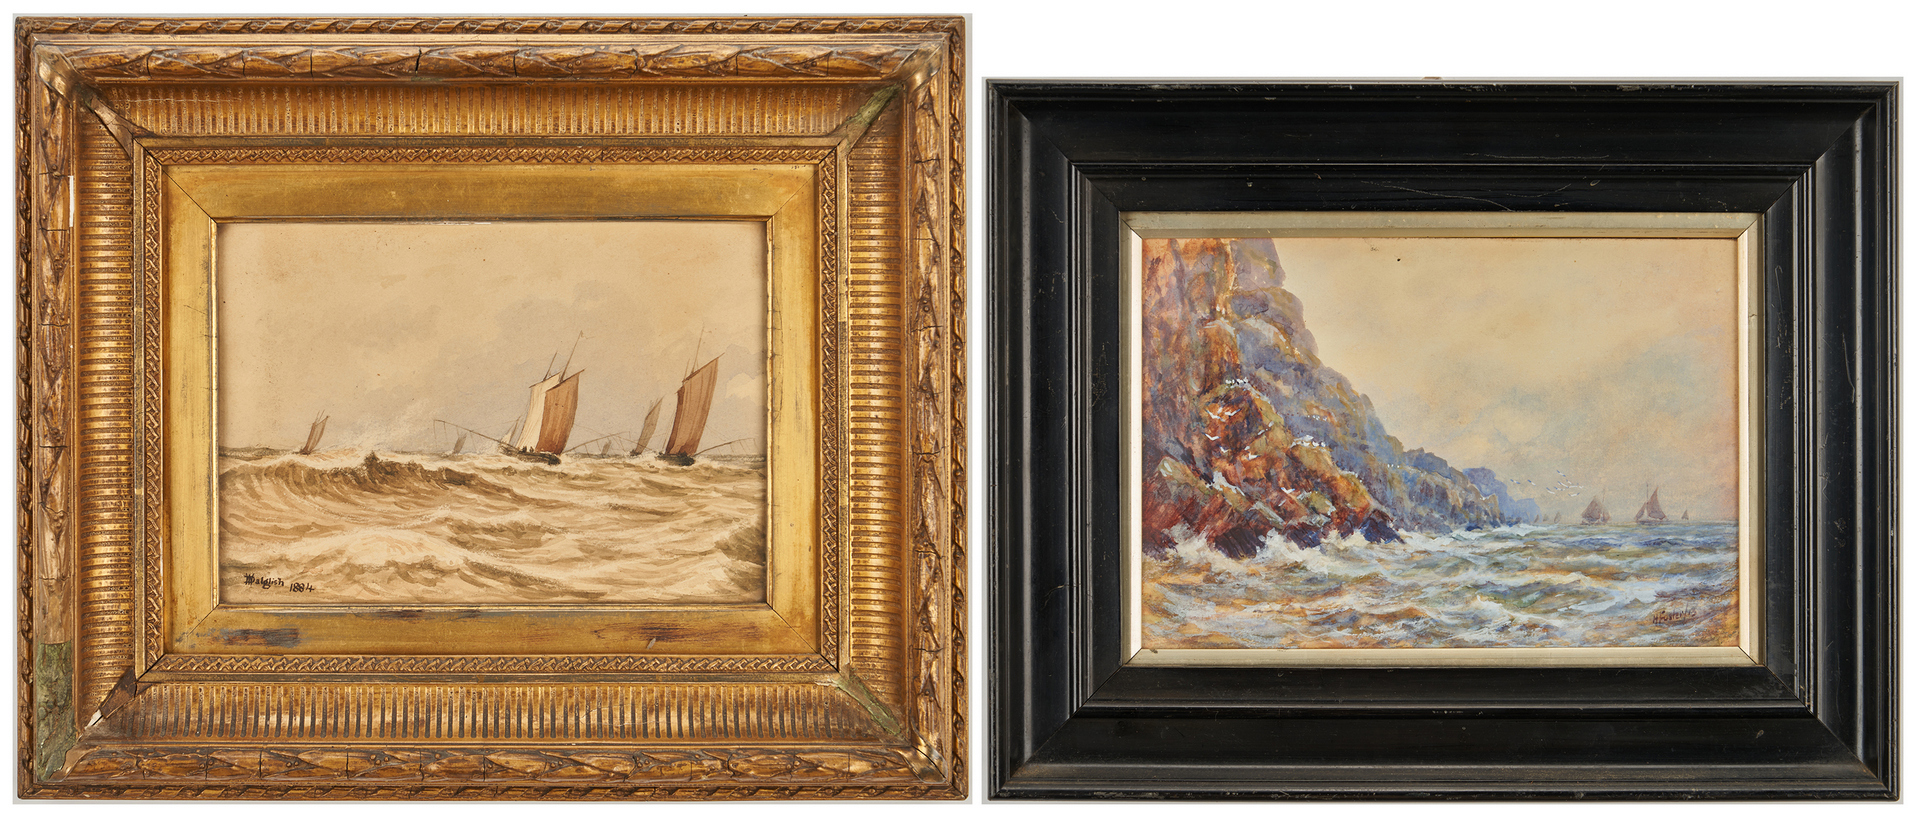 Lot 686: 2 Seascape Paintings by Daglish, Foster